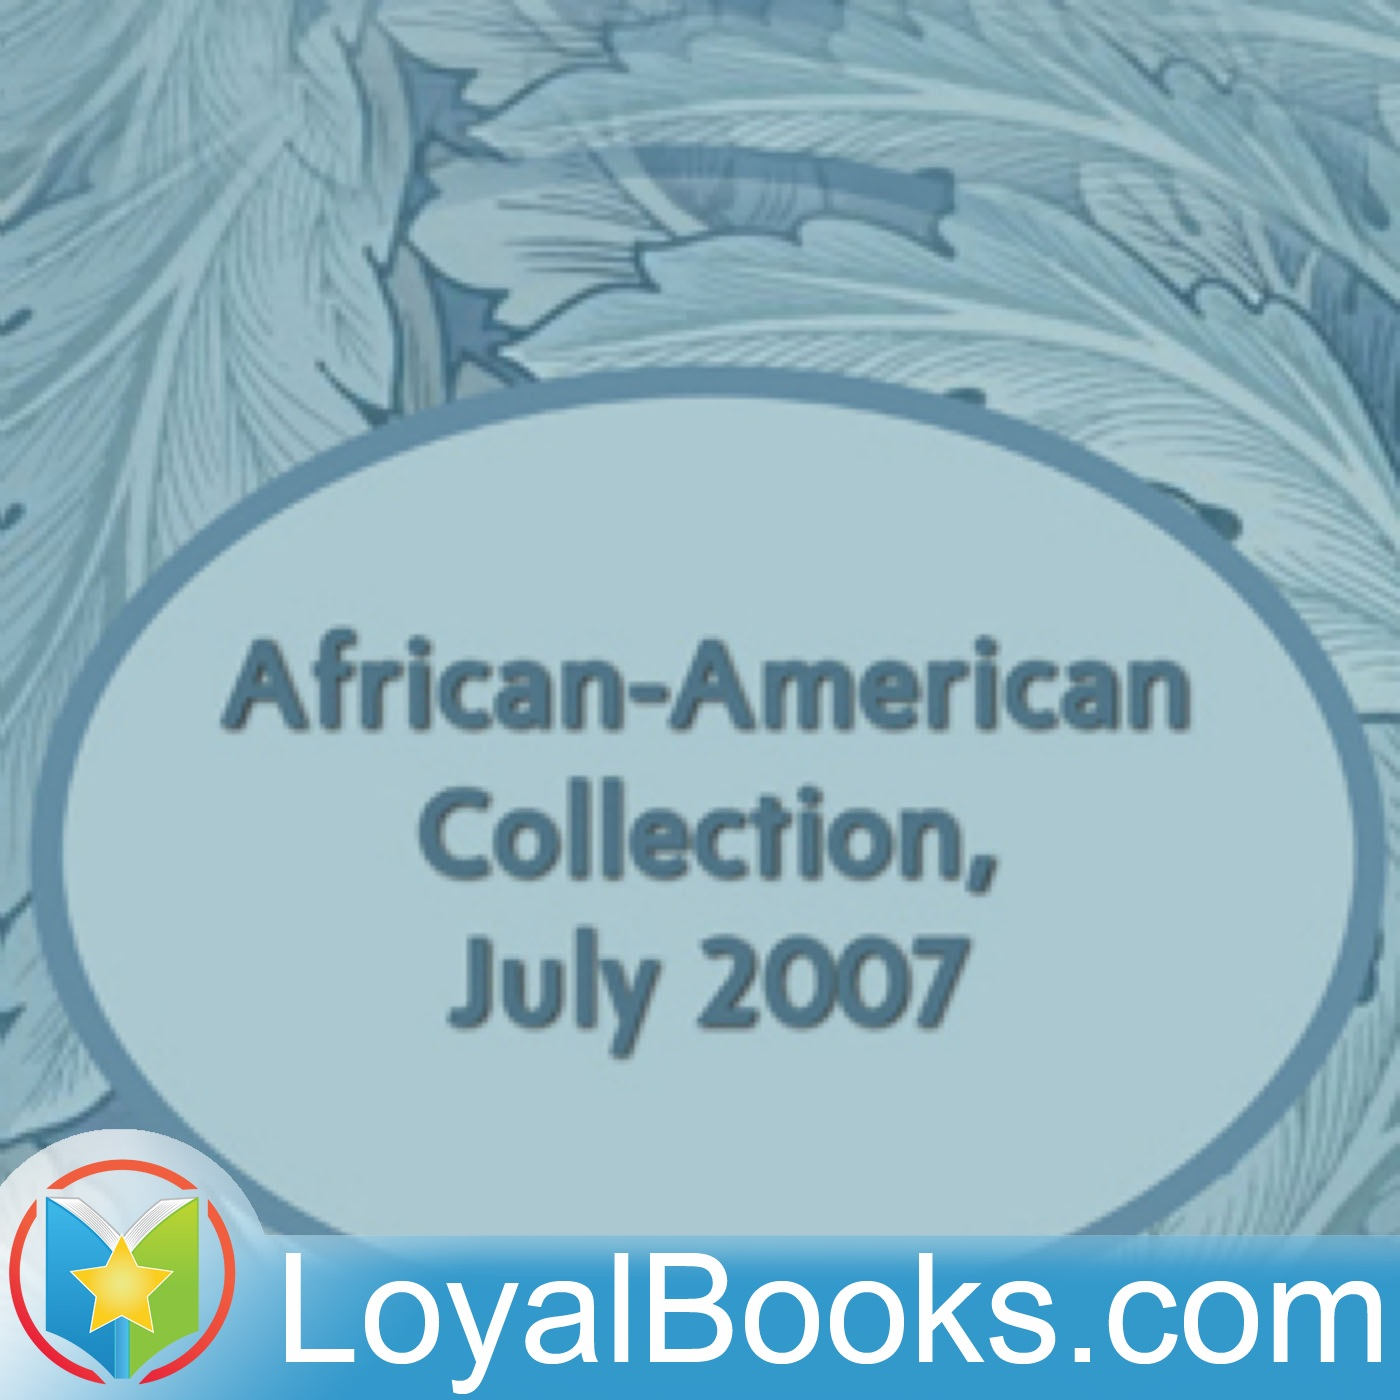 <![CDATA[African-American Collection, July 2007 by Unknown]]>